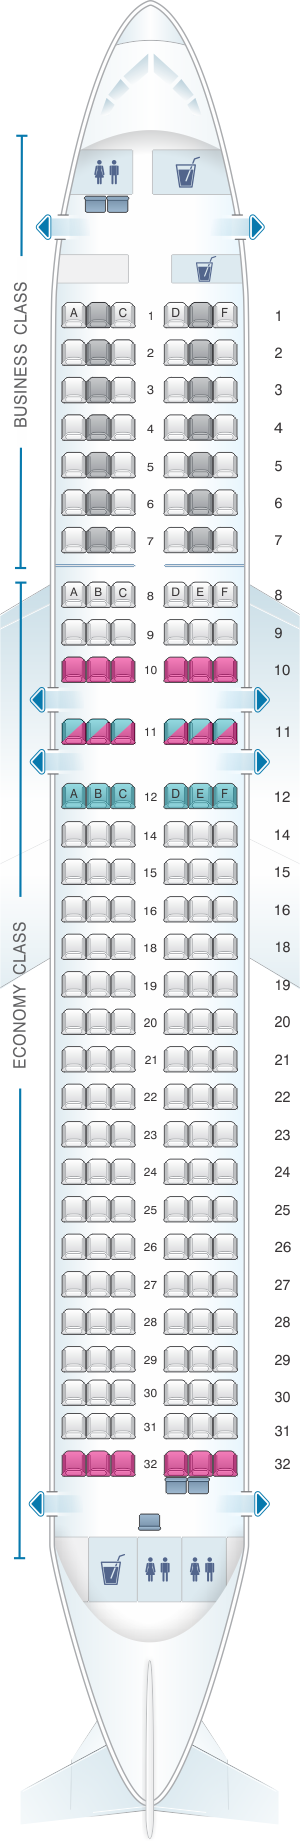 Seat map for Lufthansa Airbus A320neo